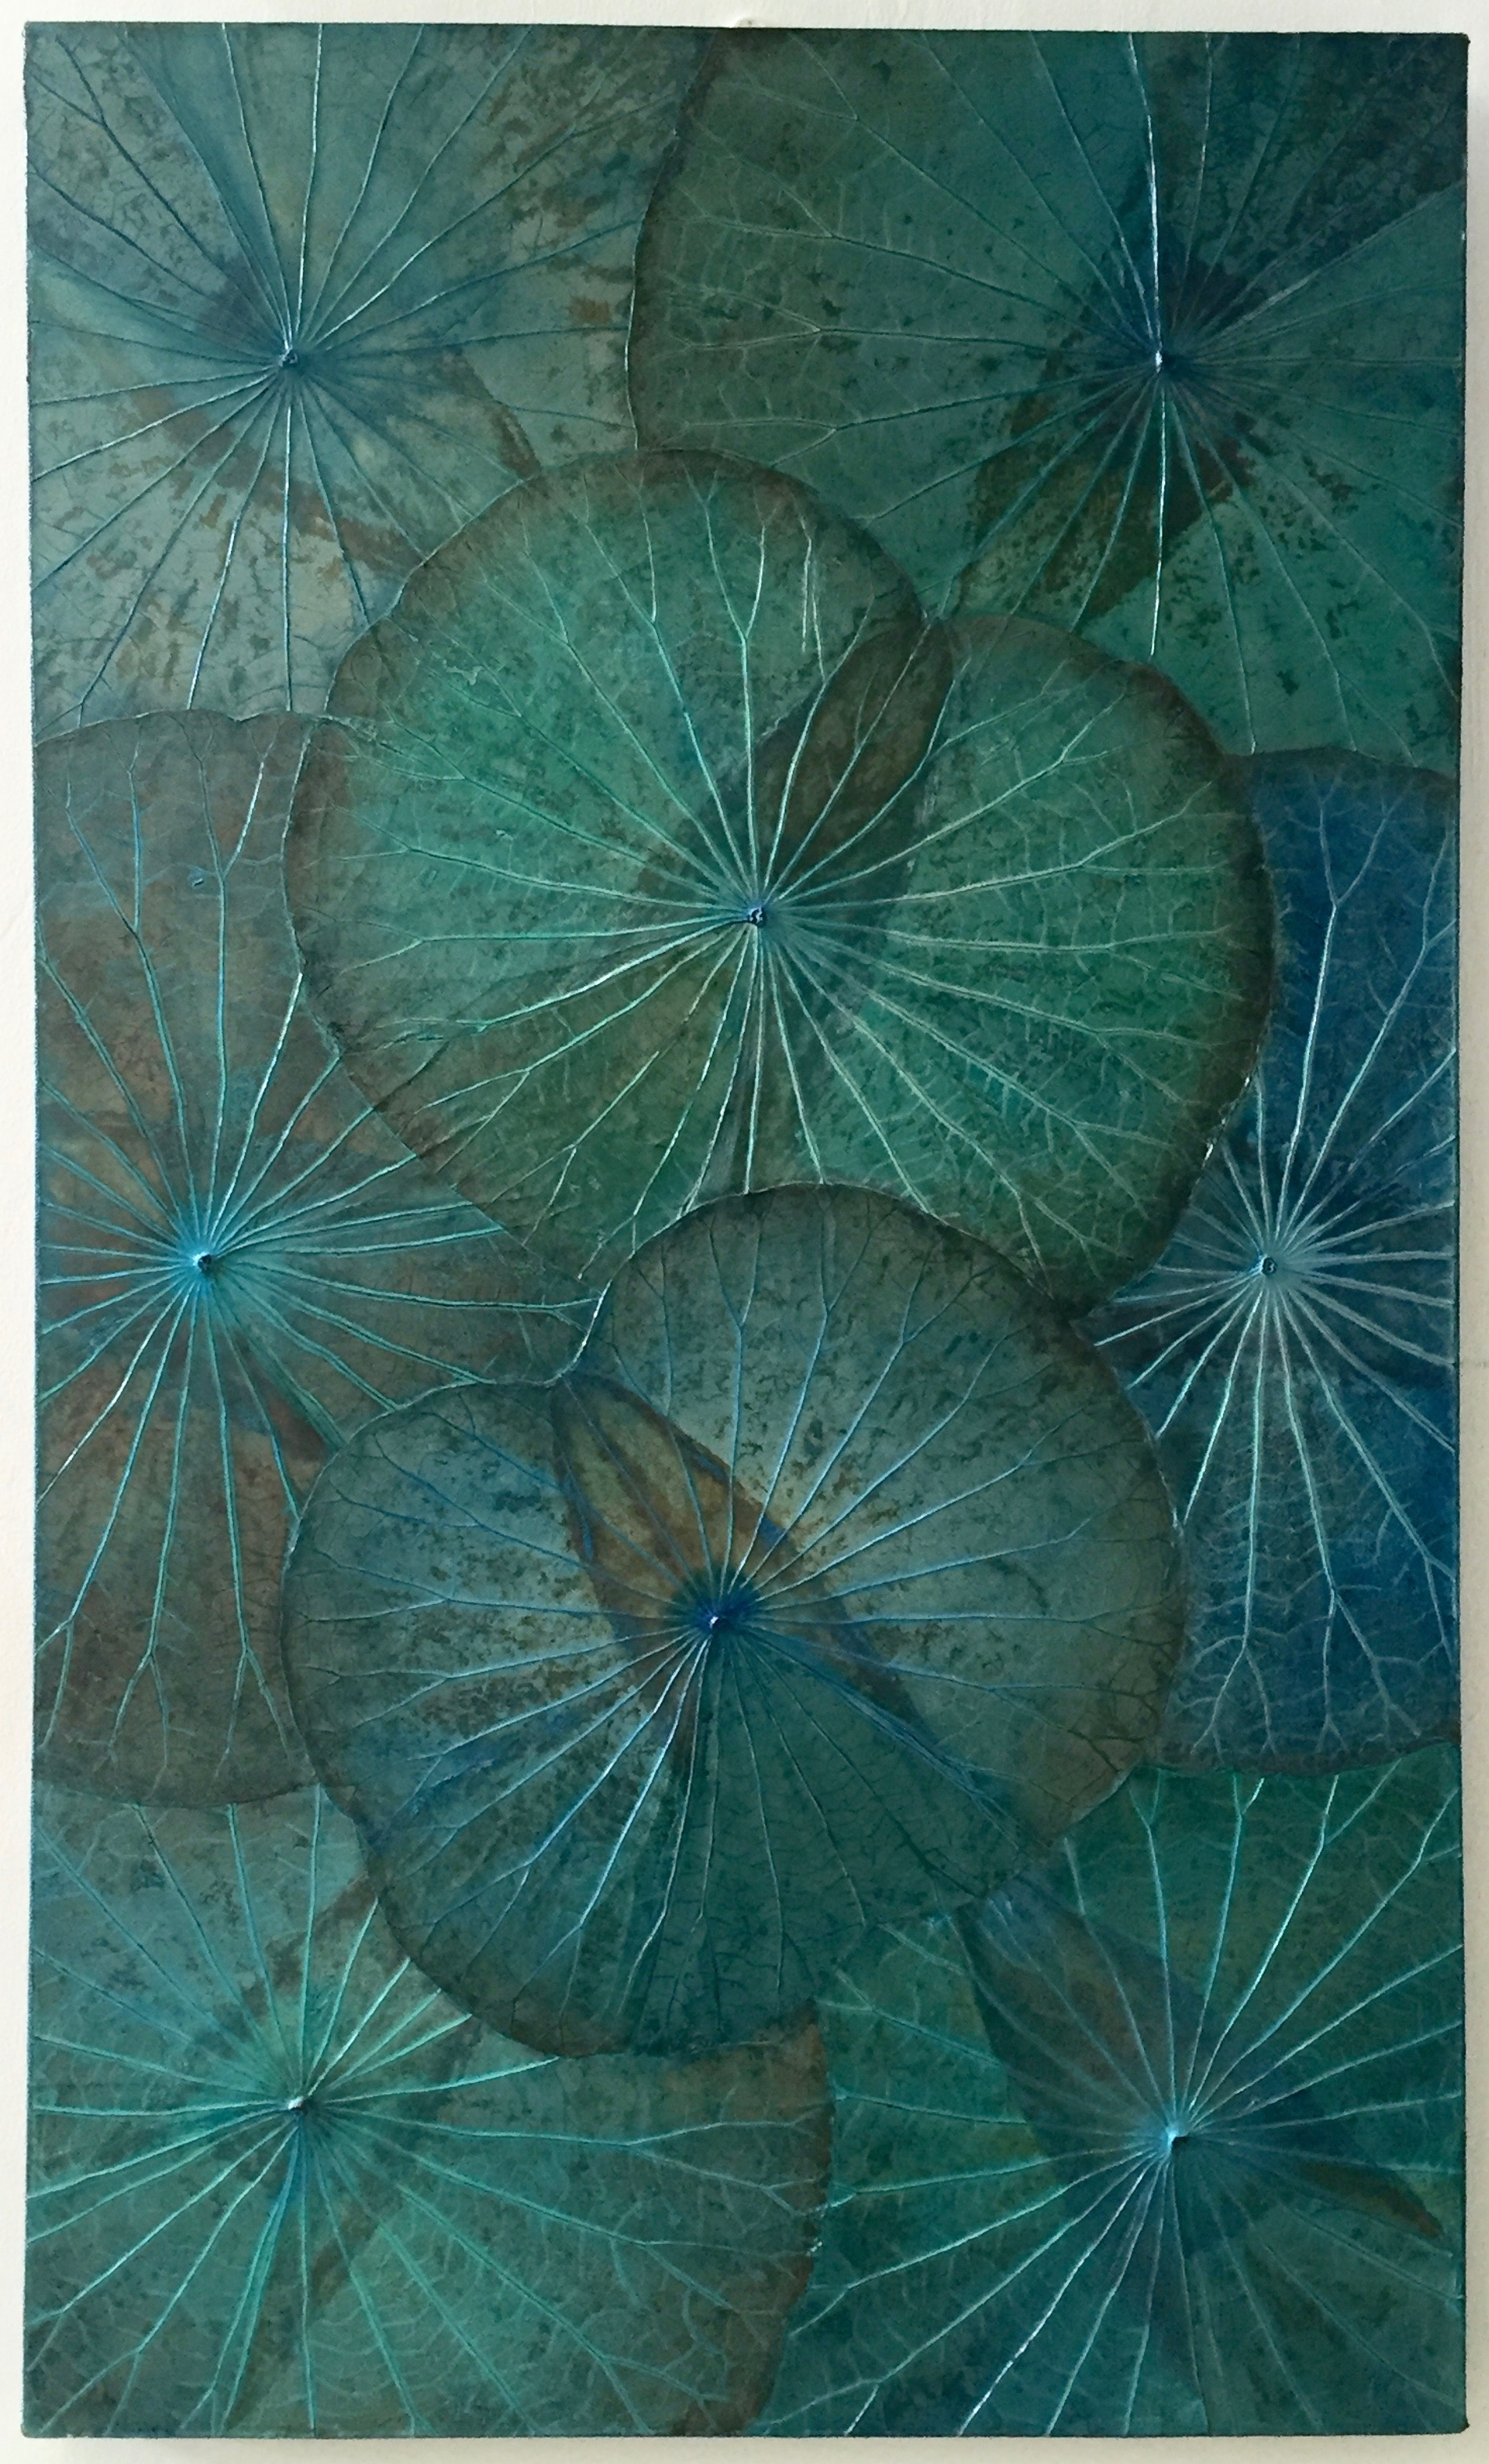 Turquoise 60x100cm sold to Angela Korea.jpg